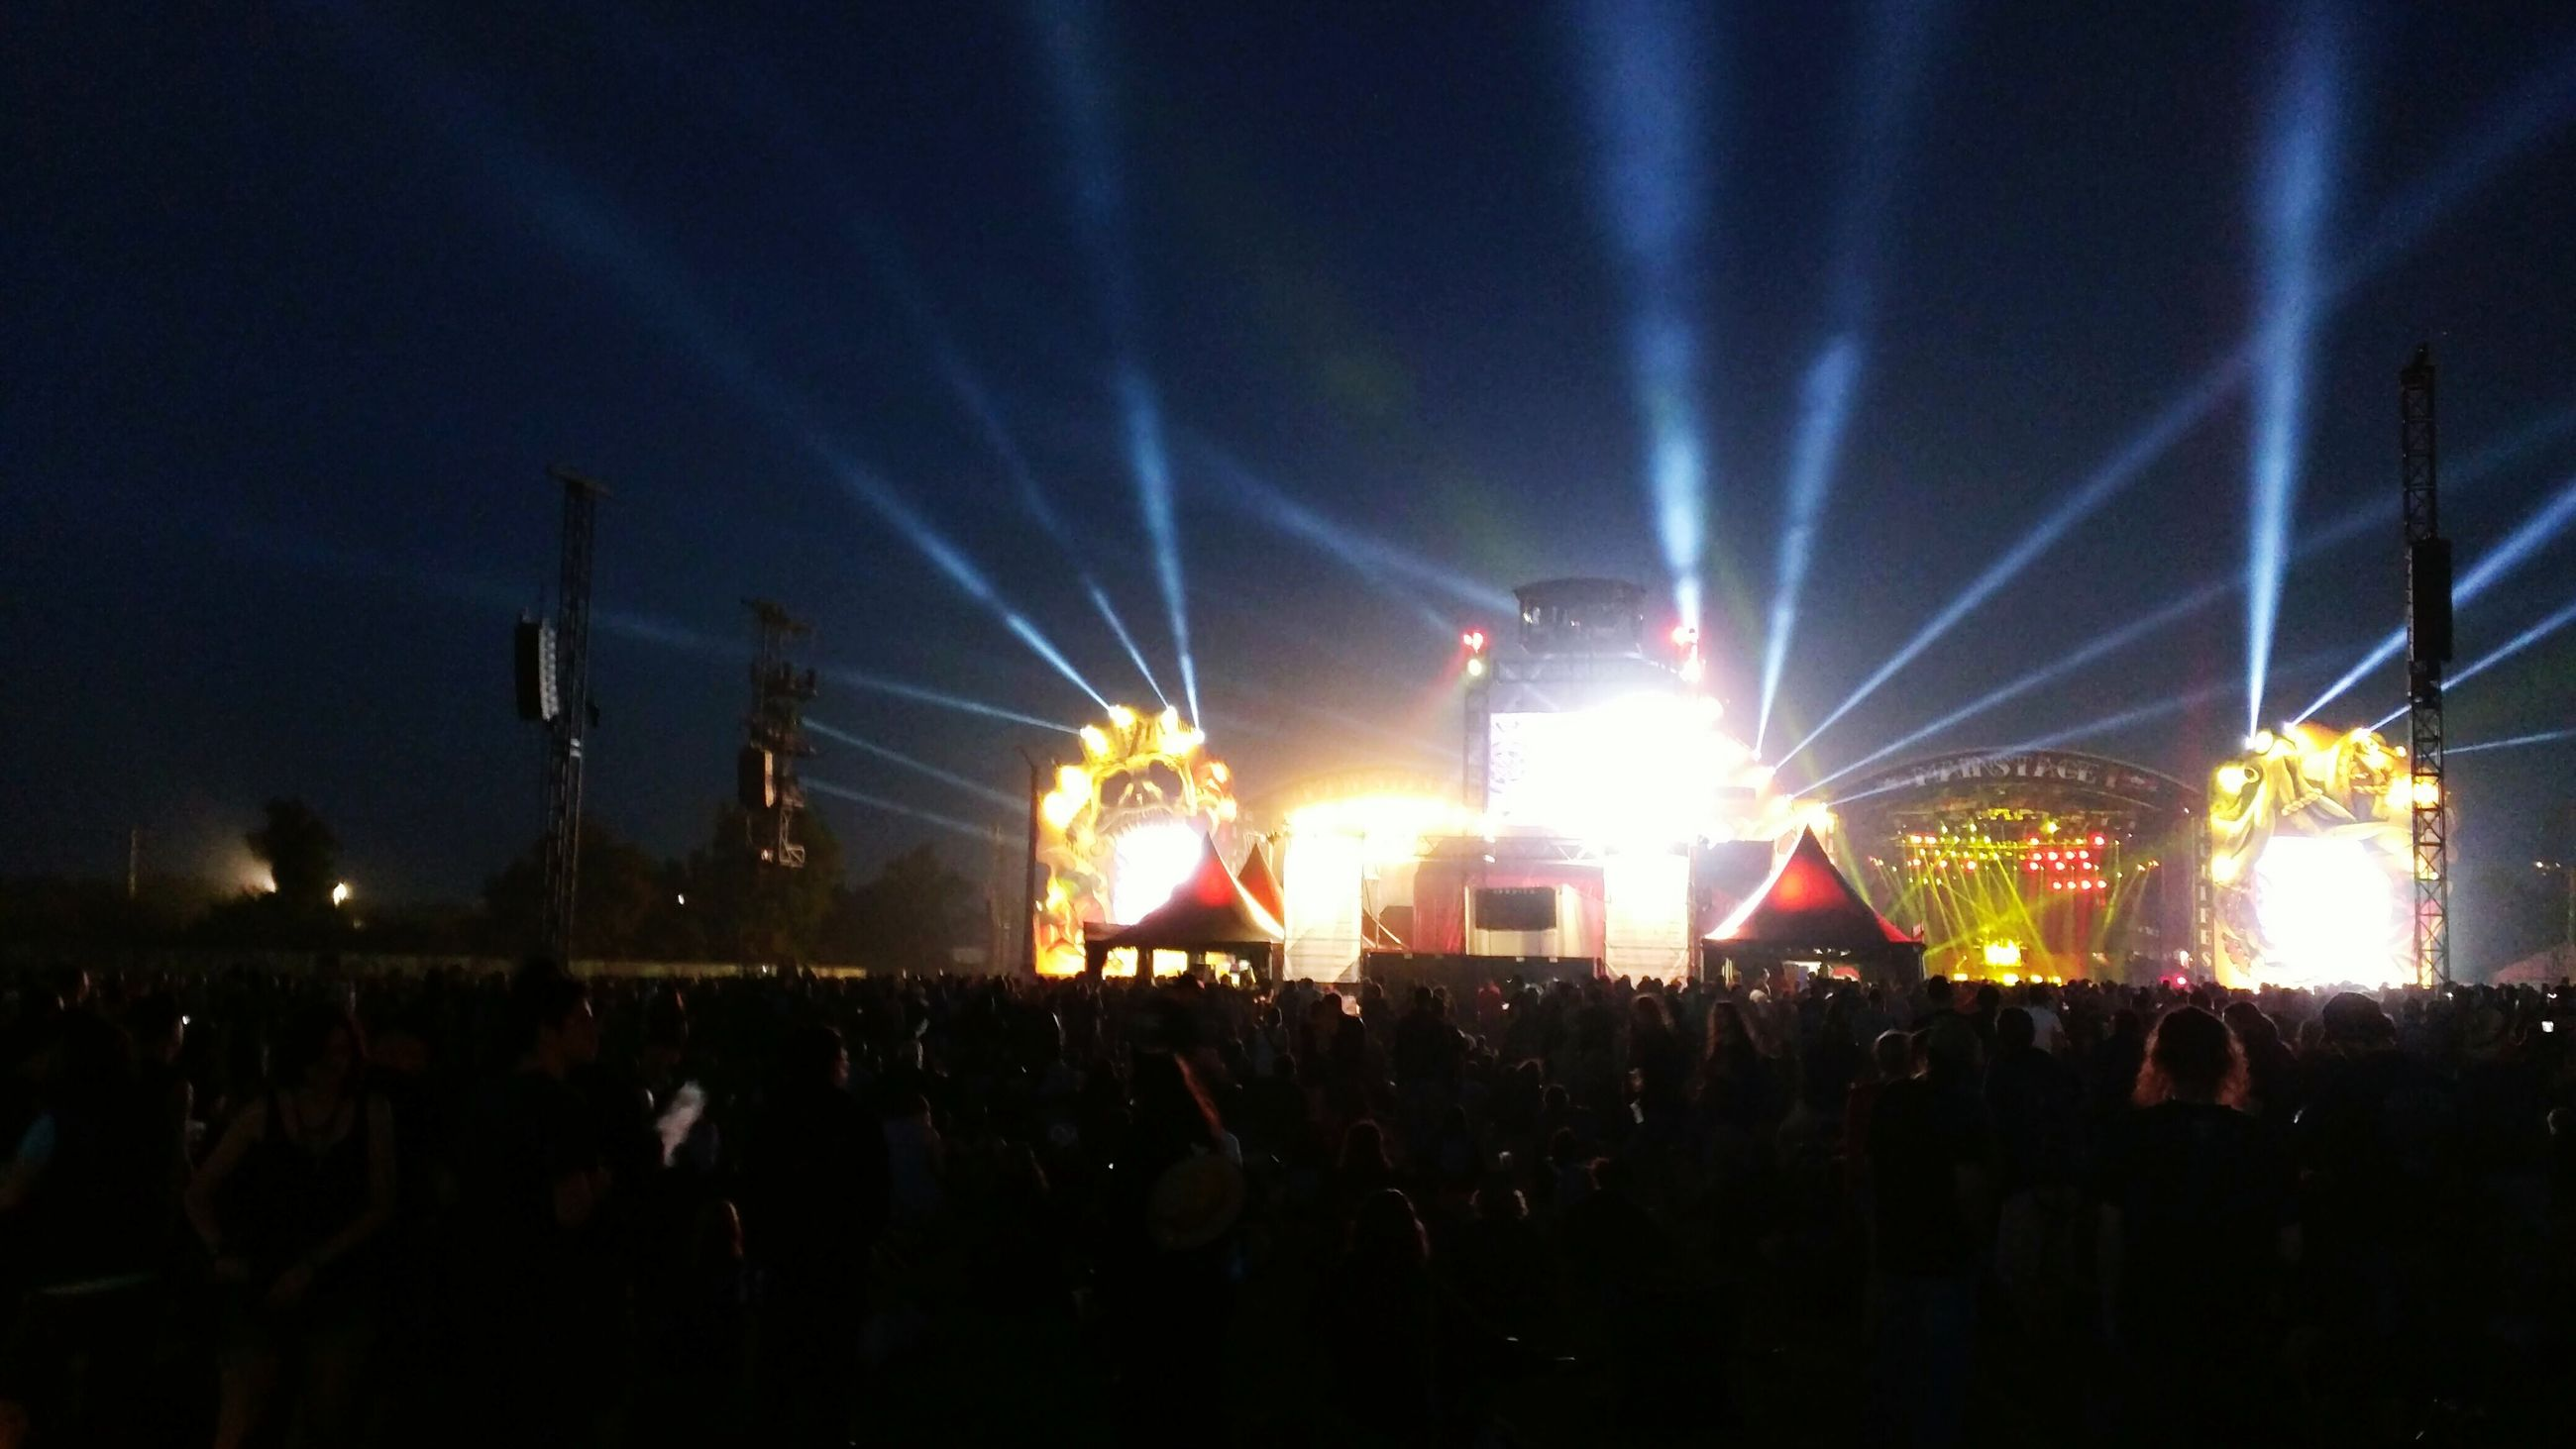 illuminated, night, large group of people, crowd, person, arts culture and entertainment, event, lighting equipment, nightlife, celebration, music, enjoyment, performance, music festival, stage - performance space, concert, lifestyles, light - natural phenomenon, stage light